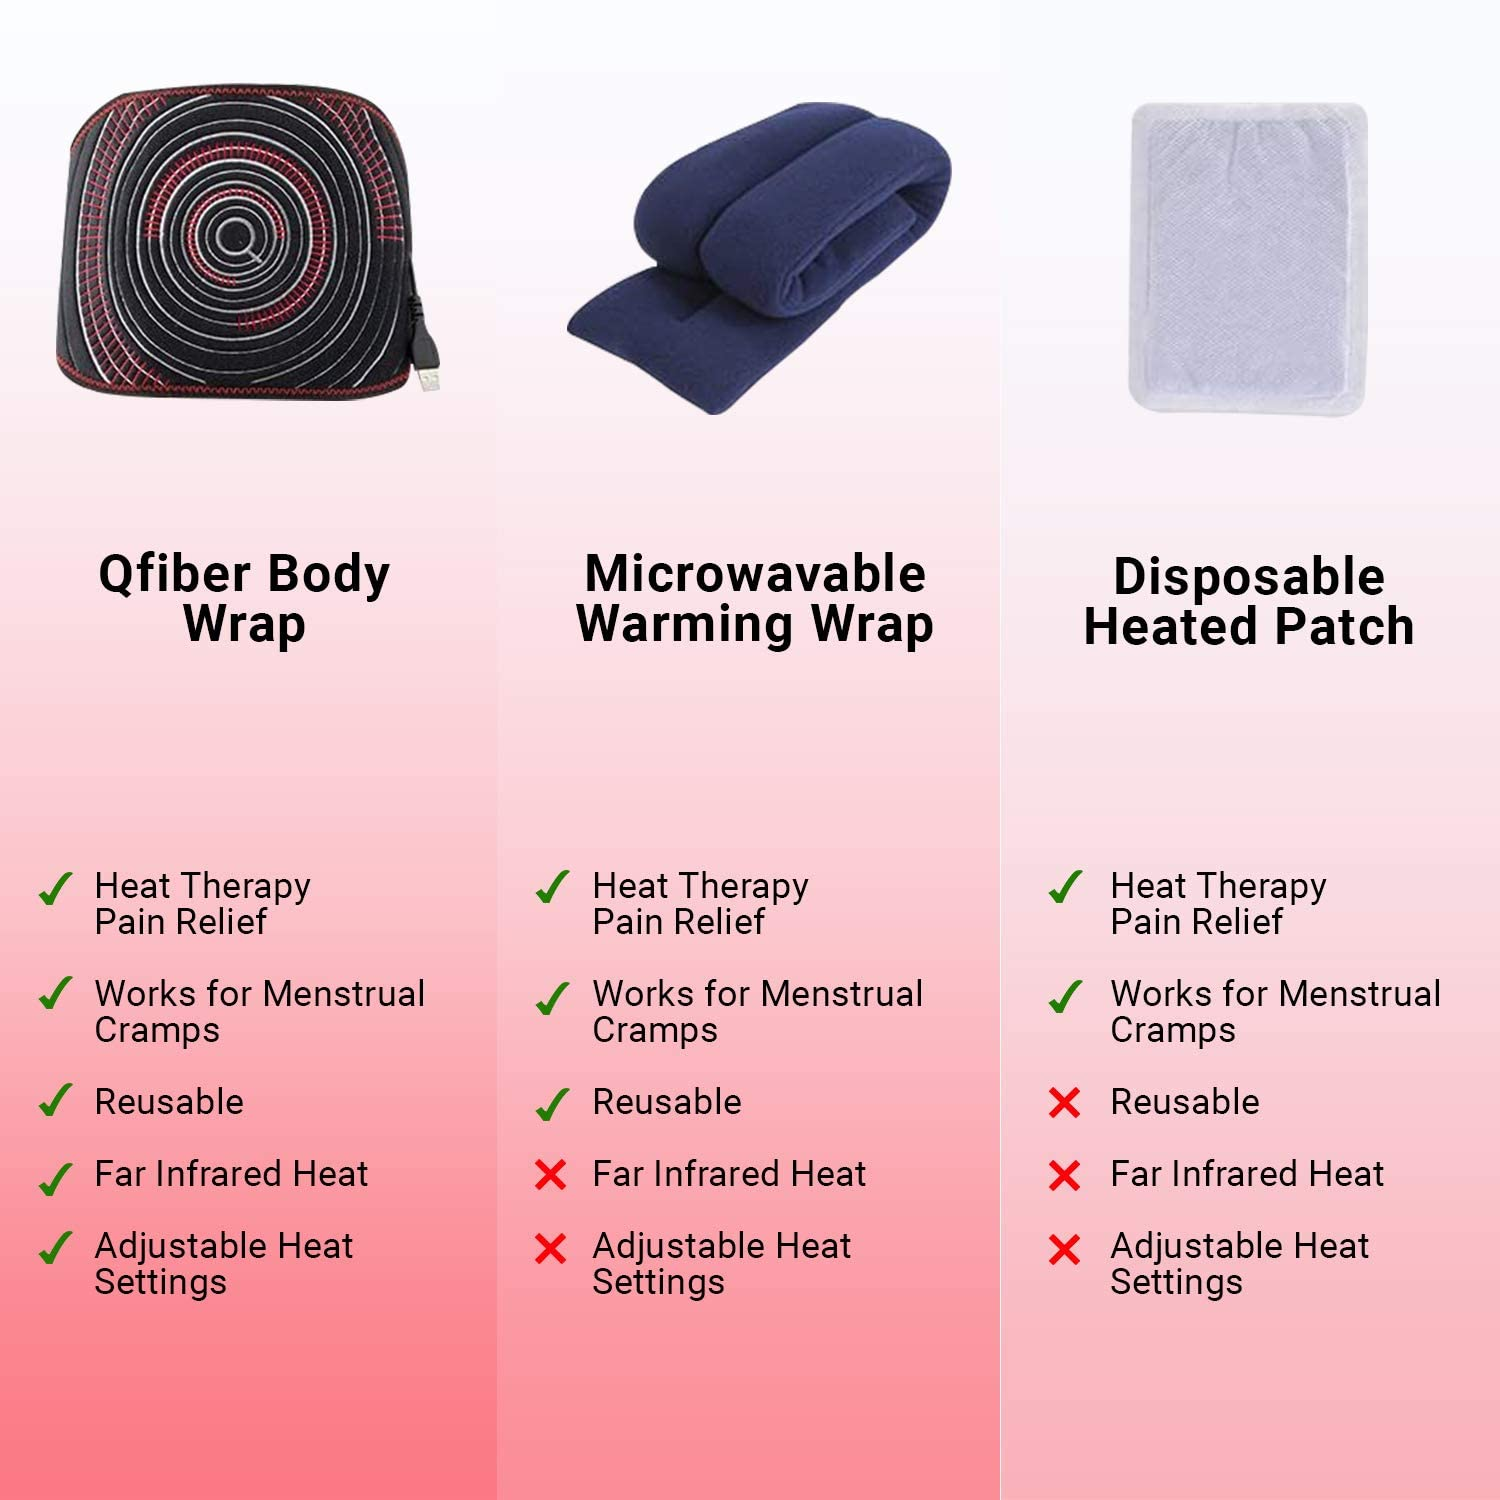 Qfiber Heat Therapy Body wrap